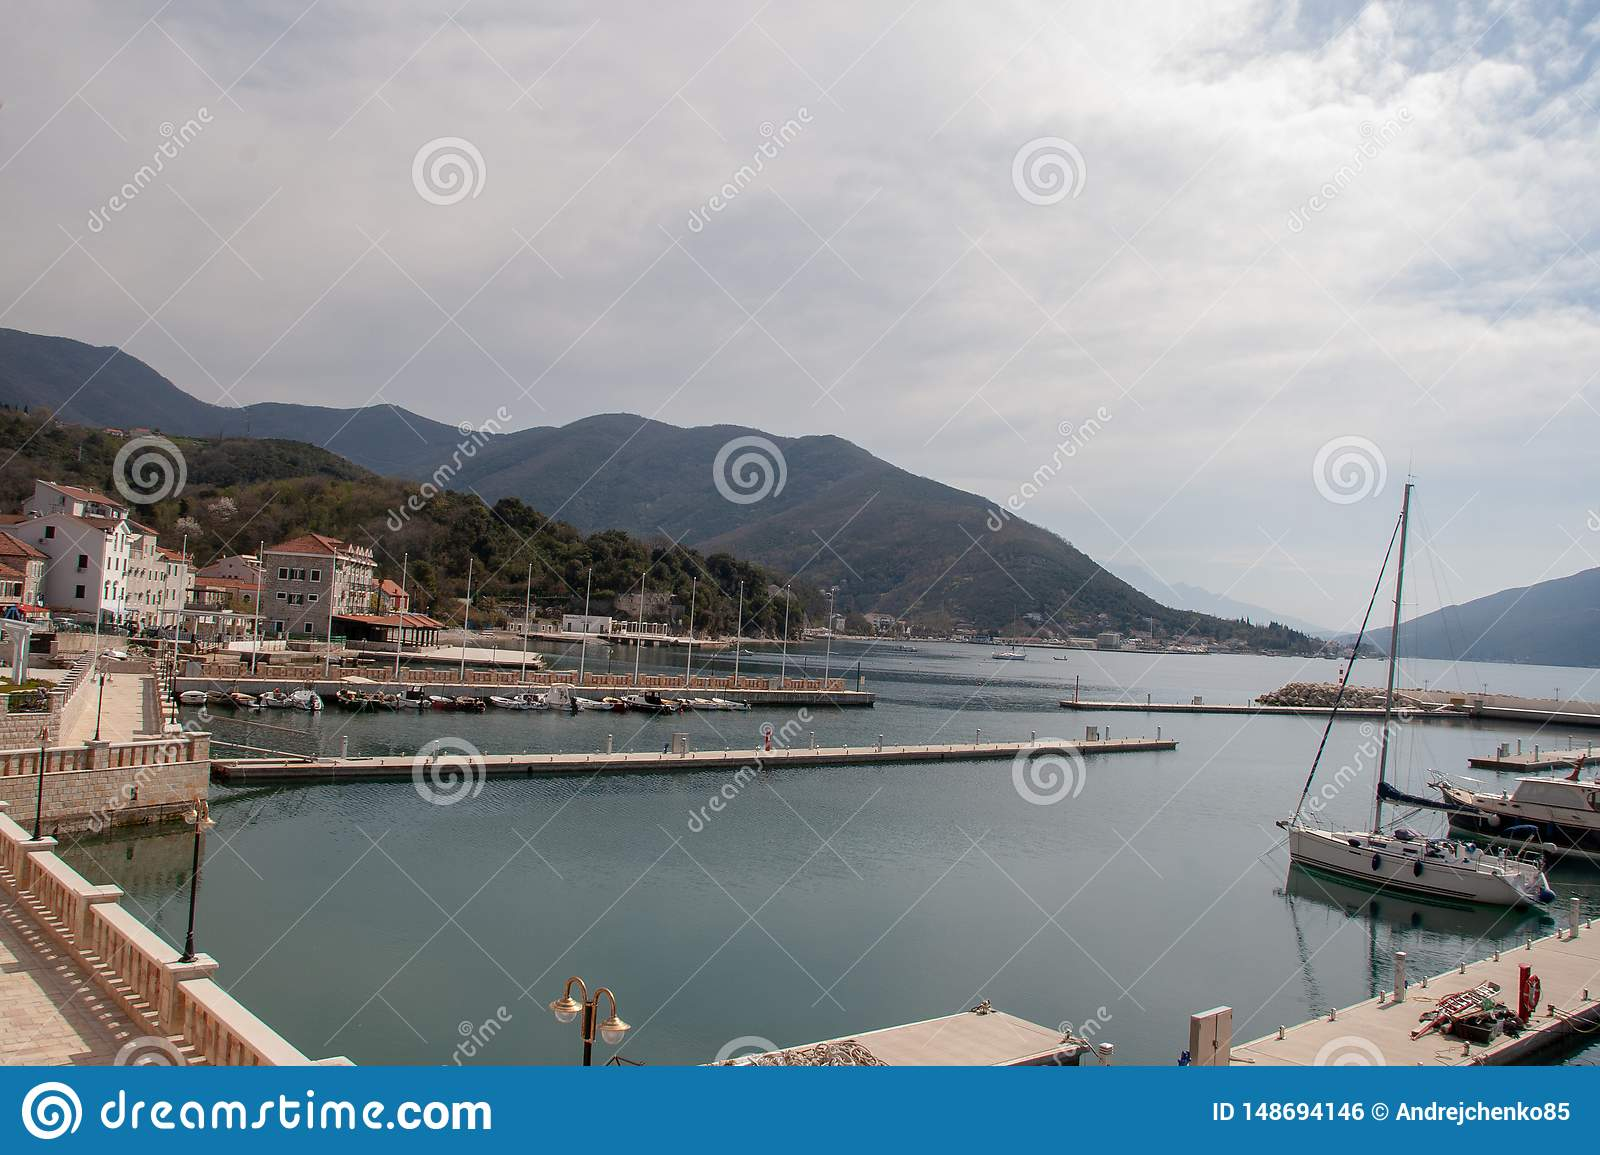 View on a small city in Montenegro near the sea and mountains.